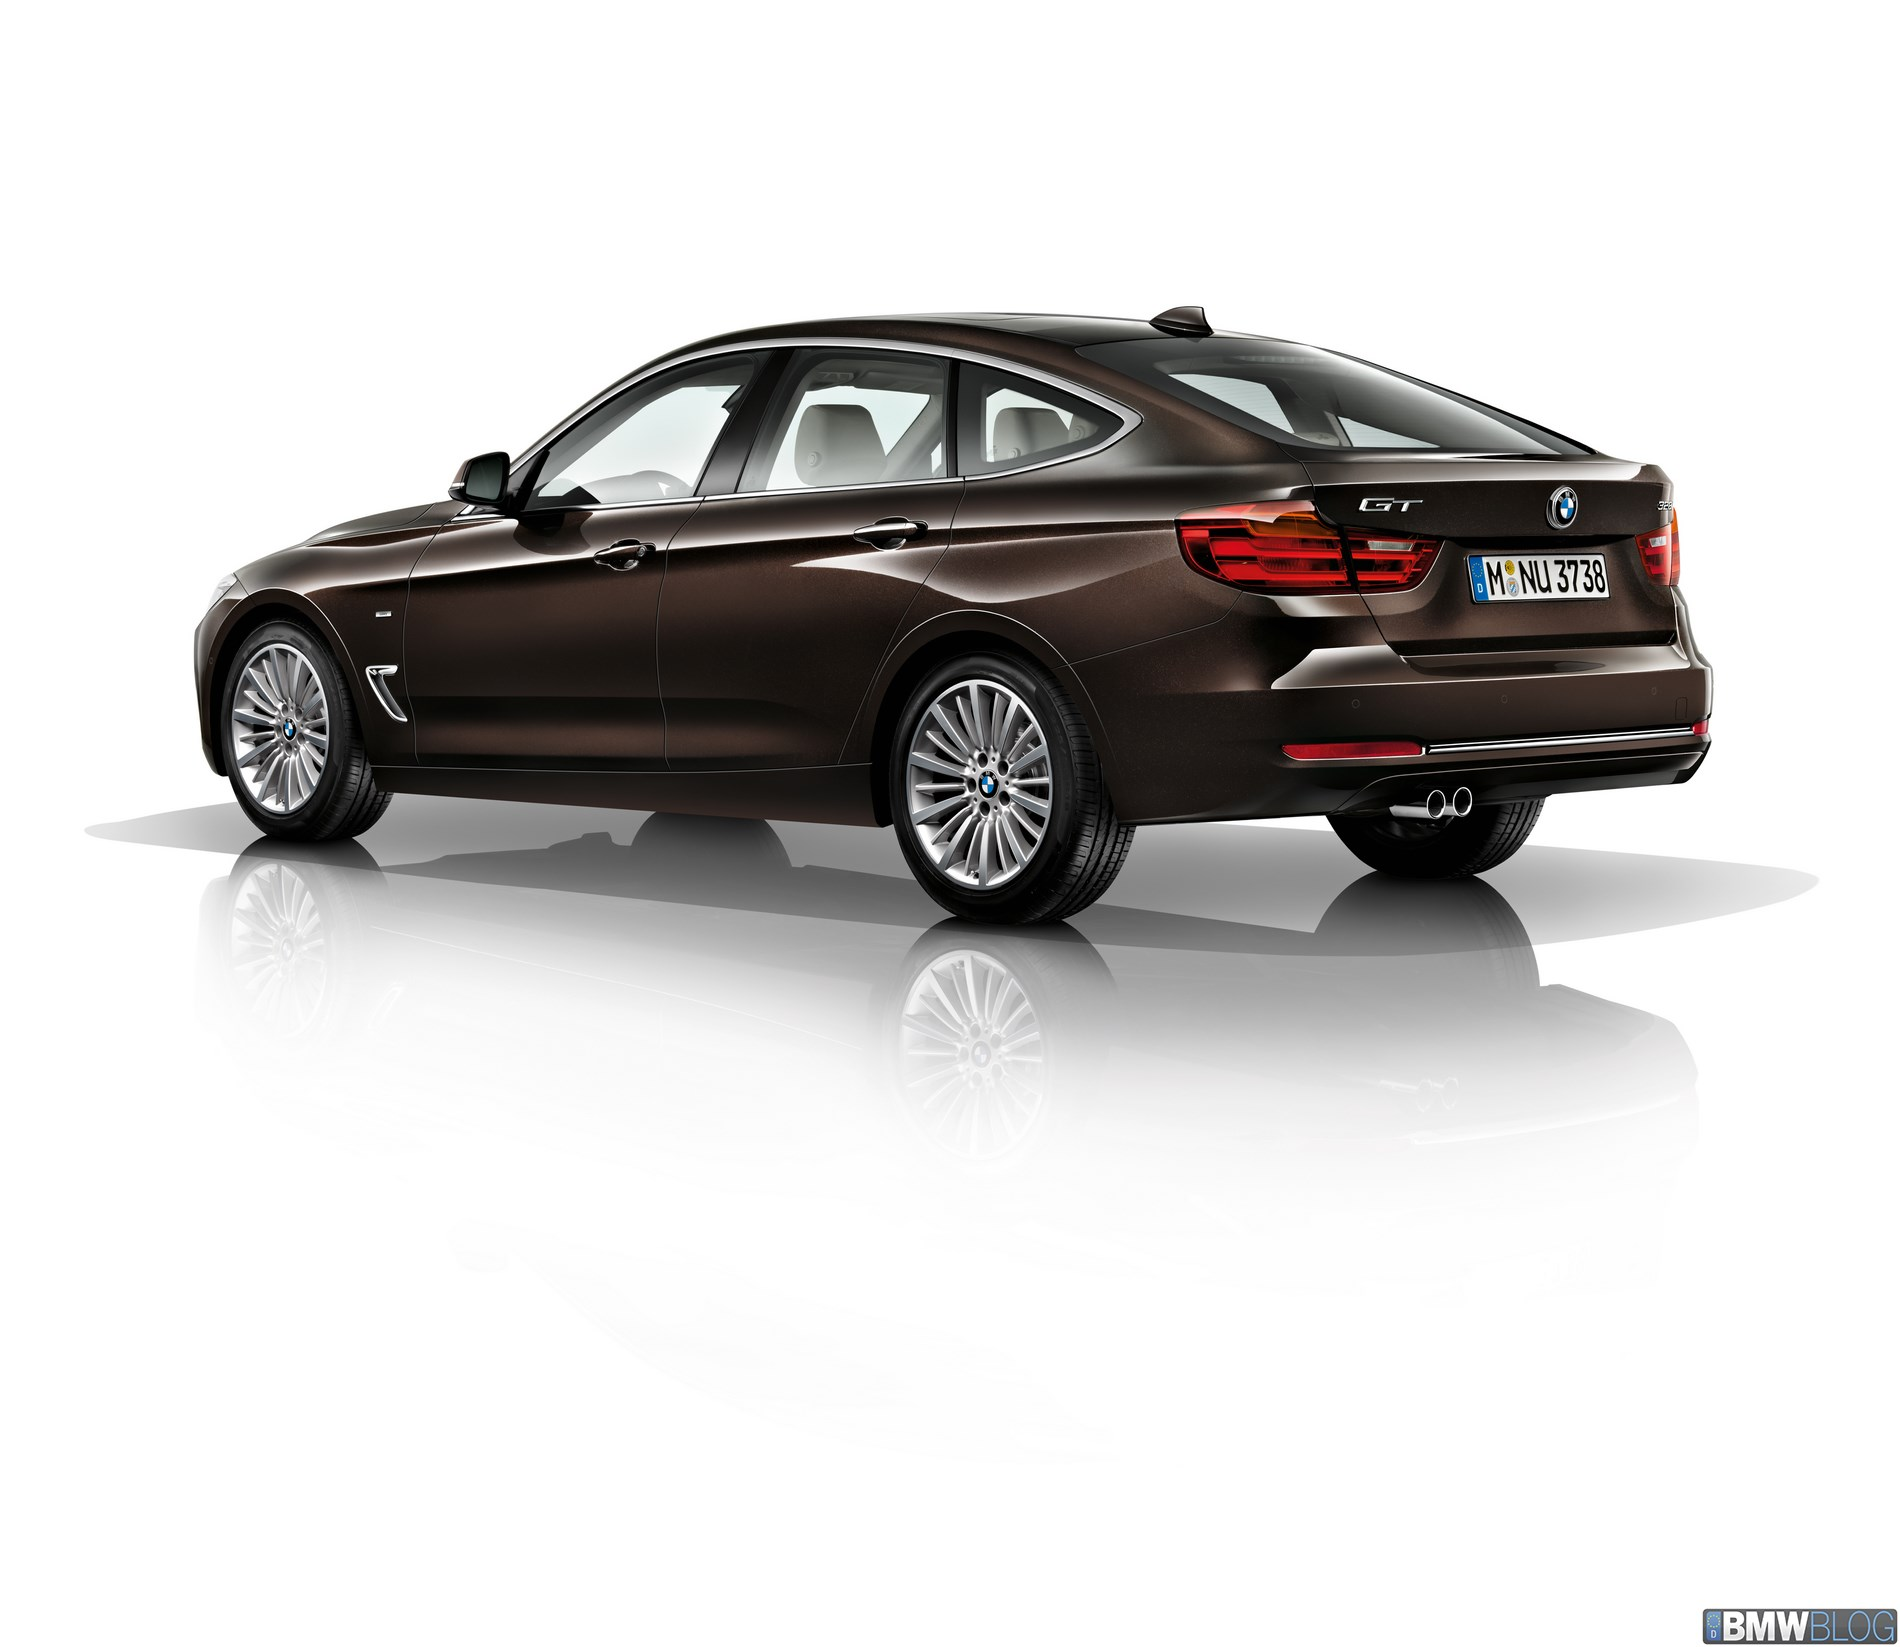 Bmw 3 Series Gran Turismo 318d And 320d Launching In Europe